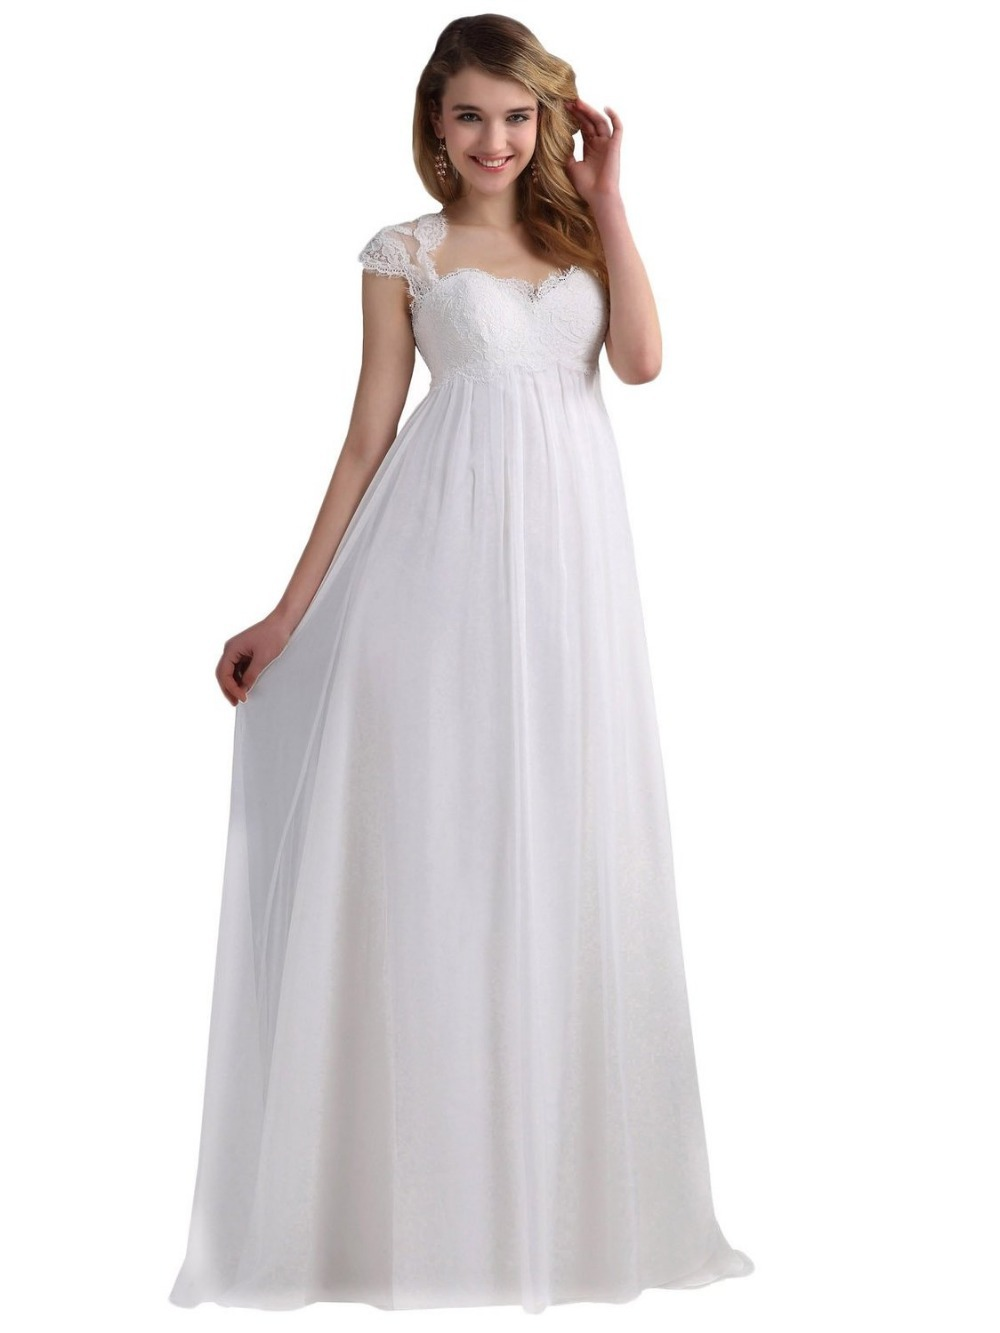 White ivory empire chiffon fashion beach wedding dresses for Long sleeve chiffon wedding dress